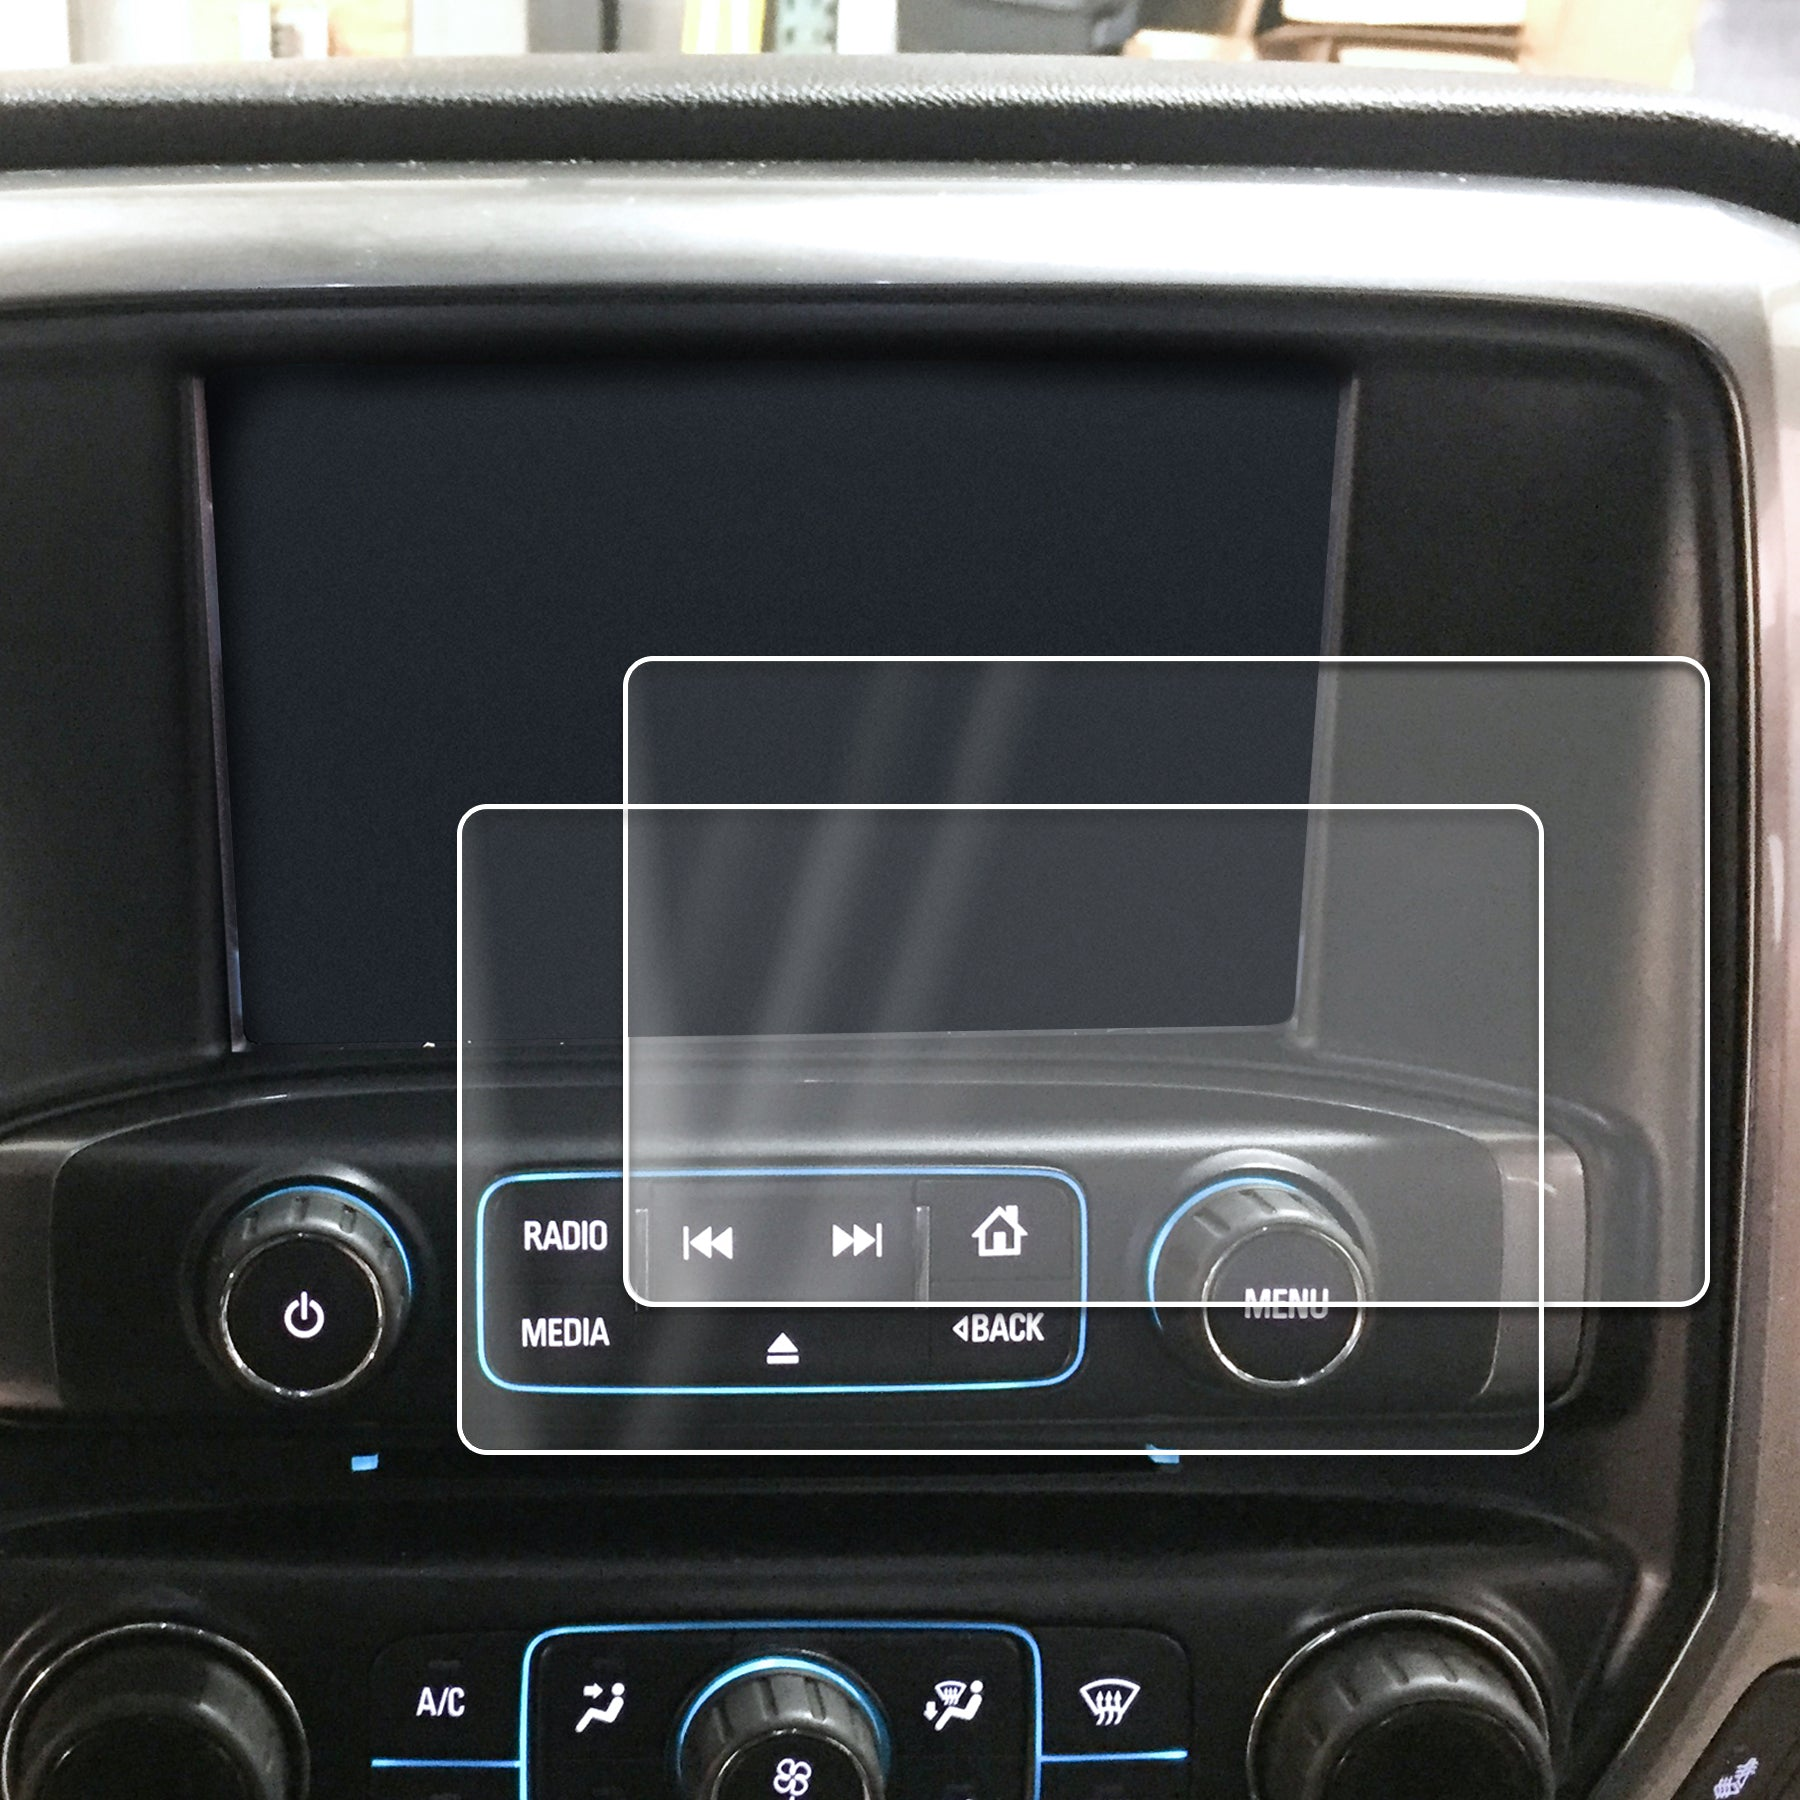 Compatible with 2014-2018 1500 GMC Sierra Intellink Chevy Silverado MyLink Screen Savers 2pc Custom Fit Invisible High Clarity Touch Display Protector Minimizes Fingerprinting 8 Inch